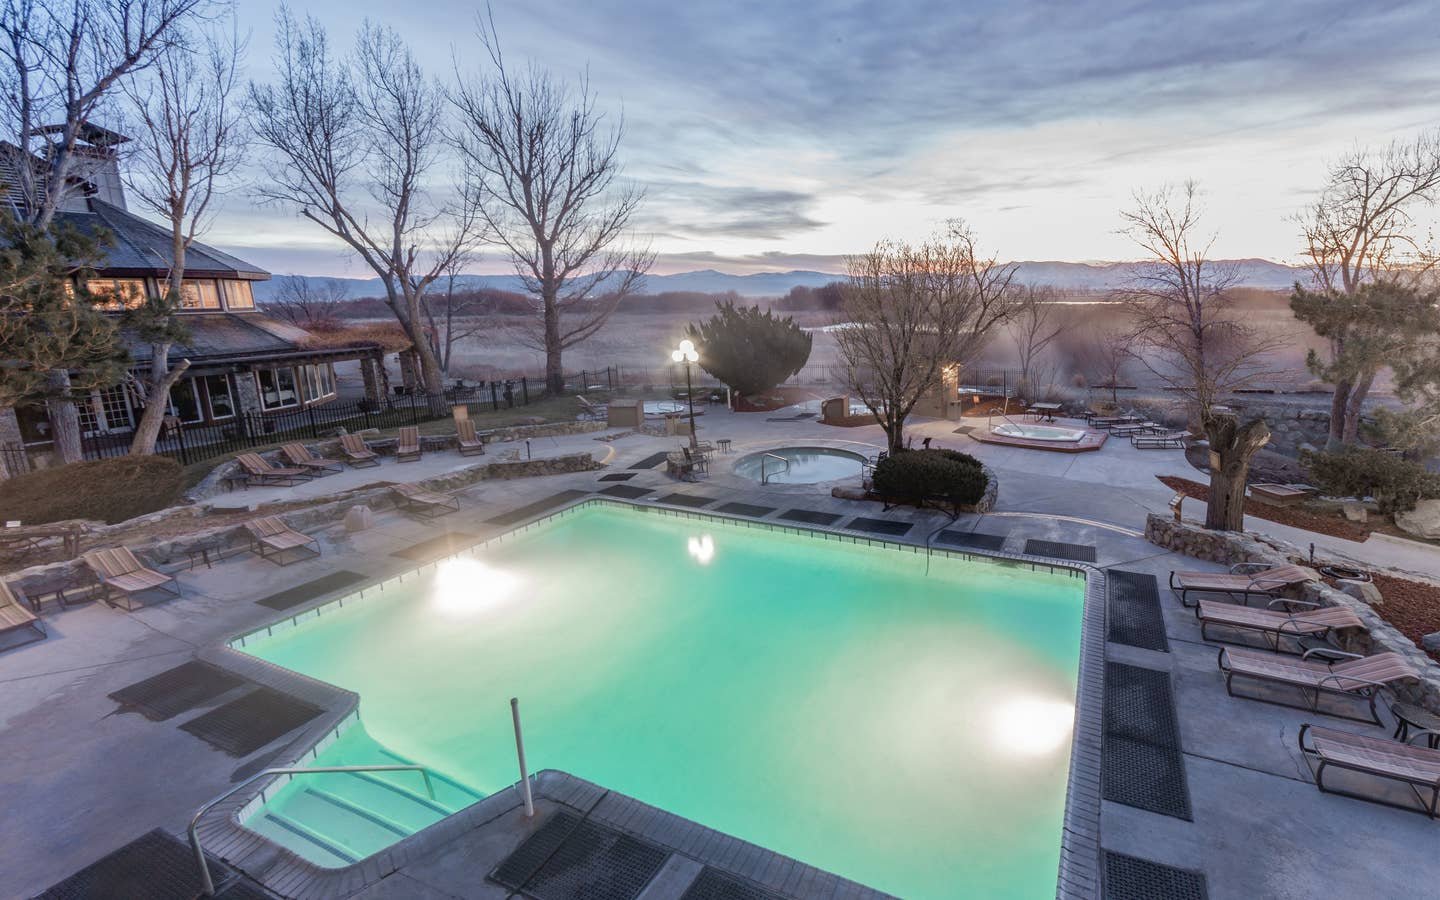 Outdoor pool with view of Sierra Nevada Mountains at David Walley's Resort in Genoa, Nevada.